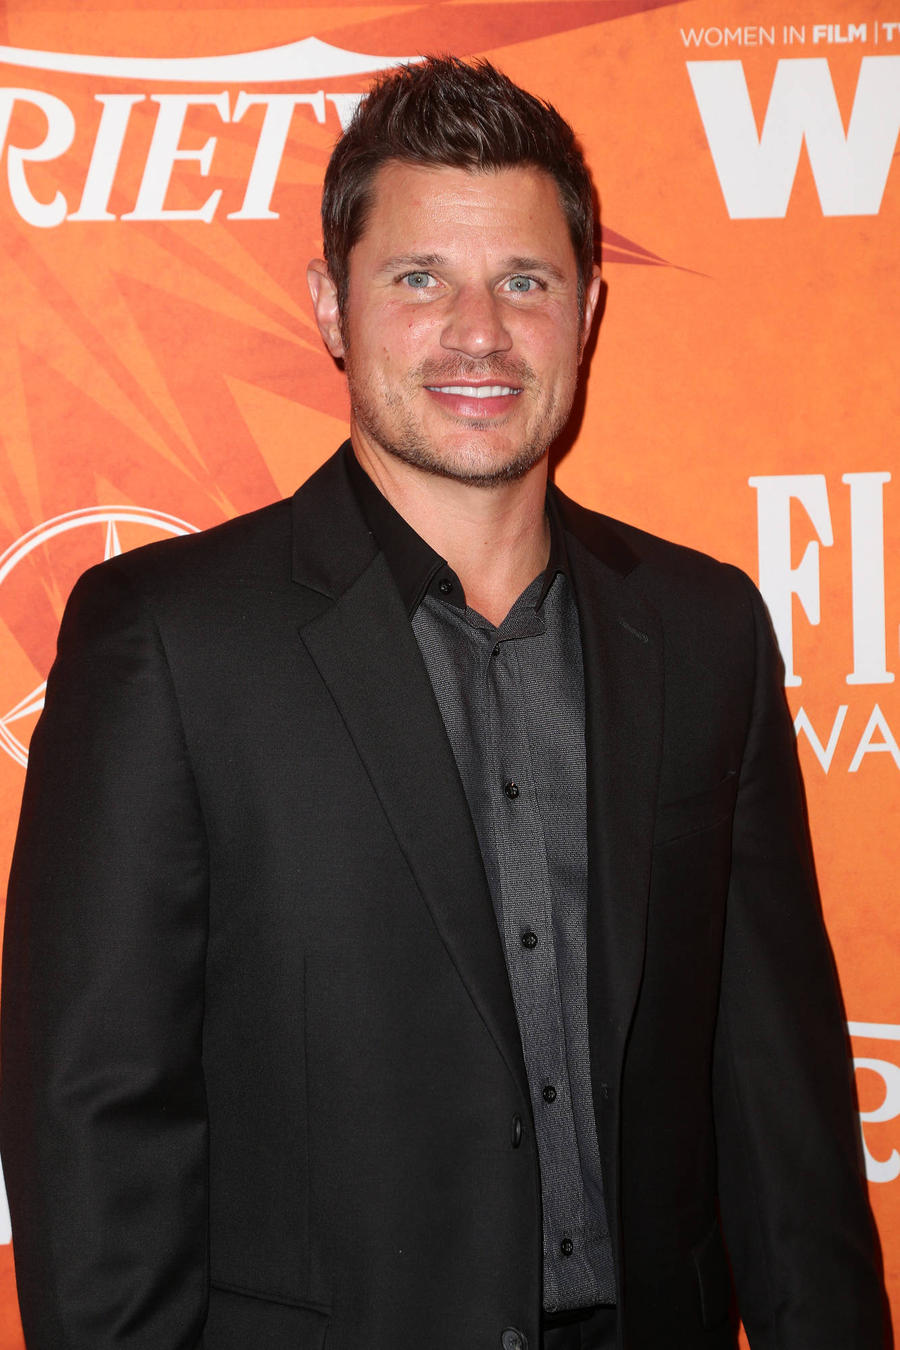 98 Degrees Reuniting For Tour